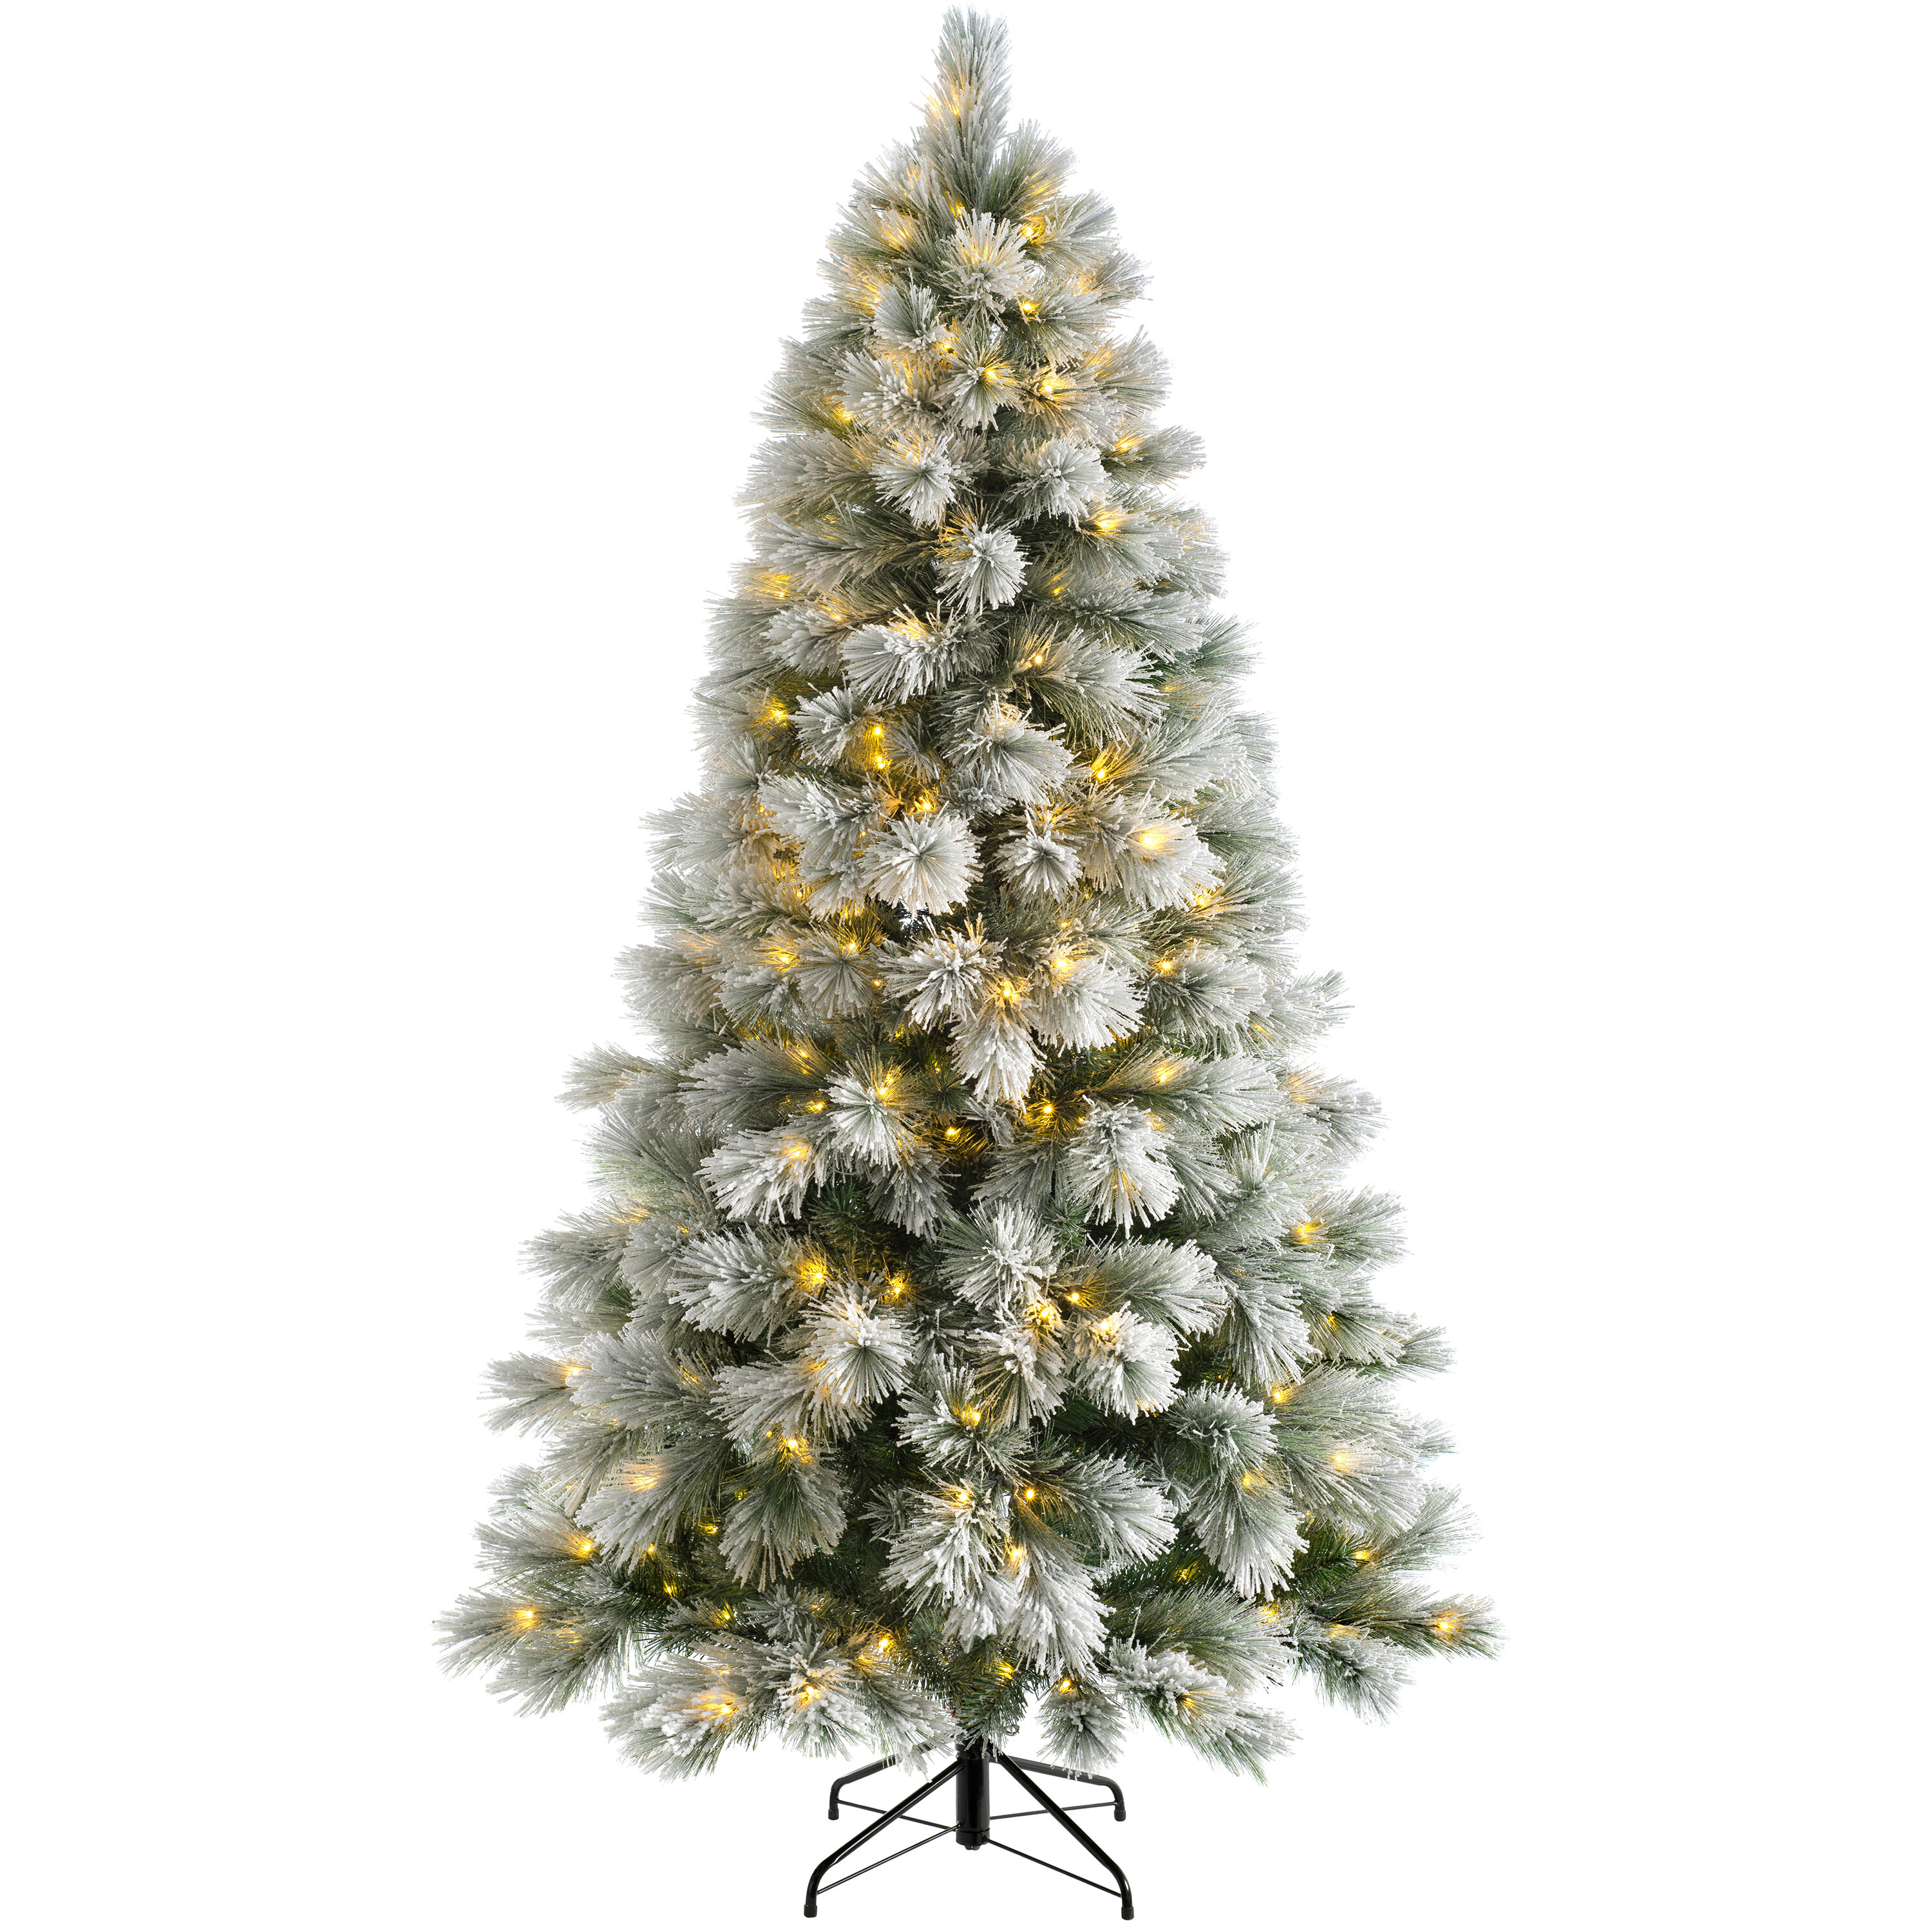 low priced 10560 fba2e 6ft Snow Flocked Pine Artificial Christmas Tree with 250 Clear and White  Lights